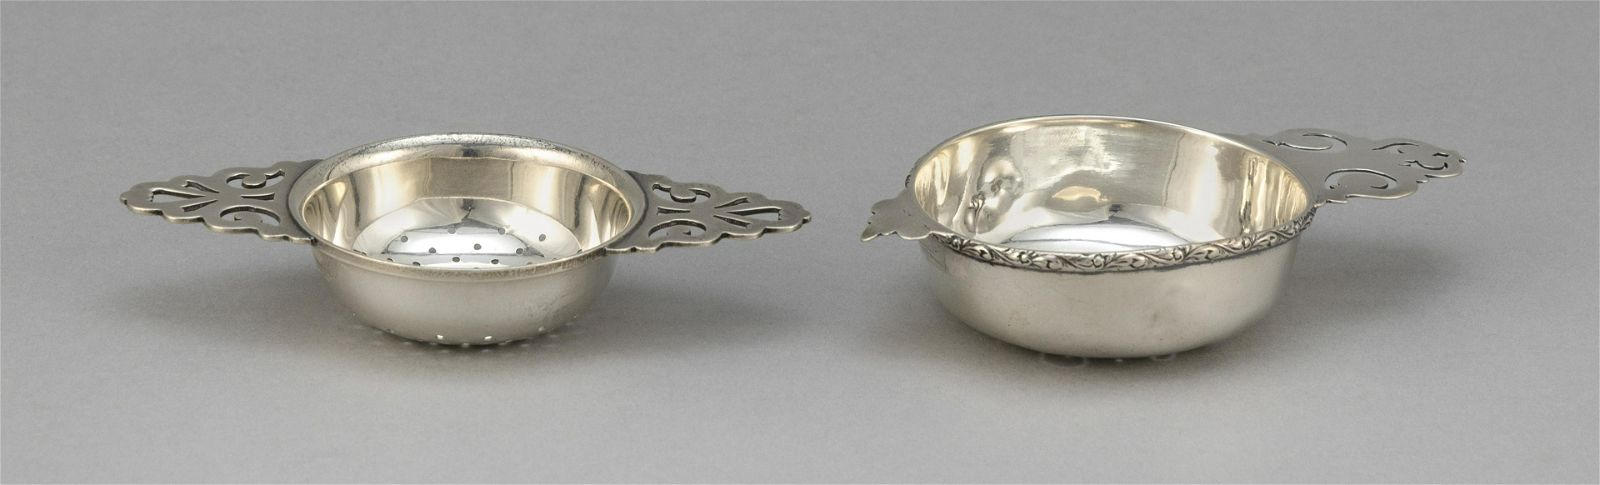 TWO AMERICAN STERLING SILVER TEA STRAINERS Approx. 3.4